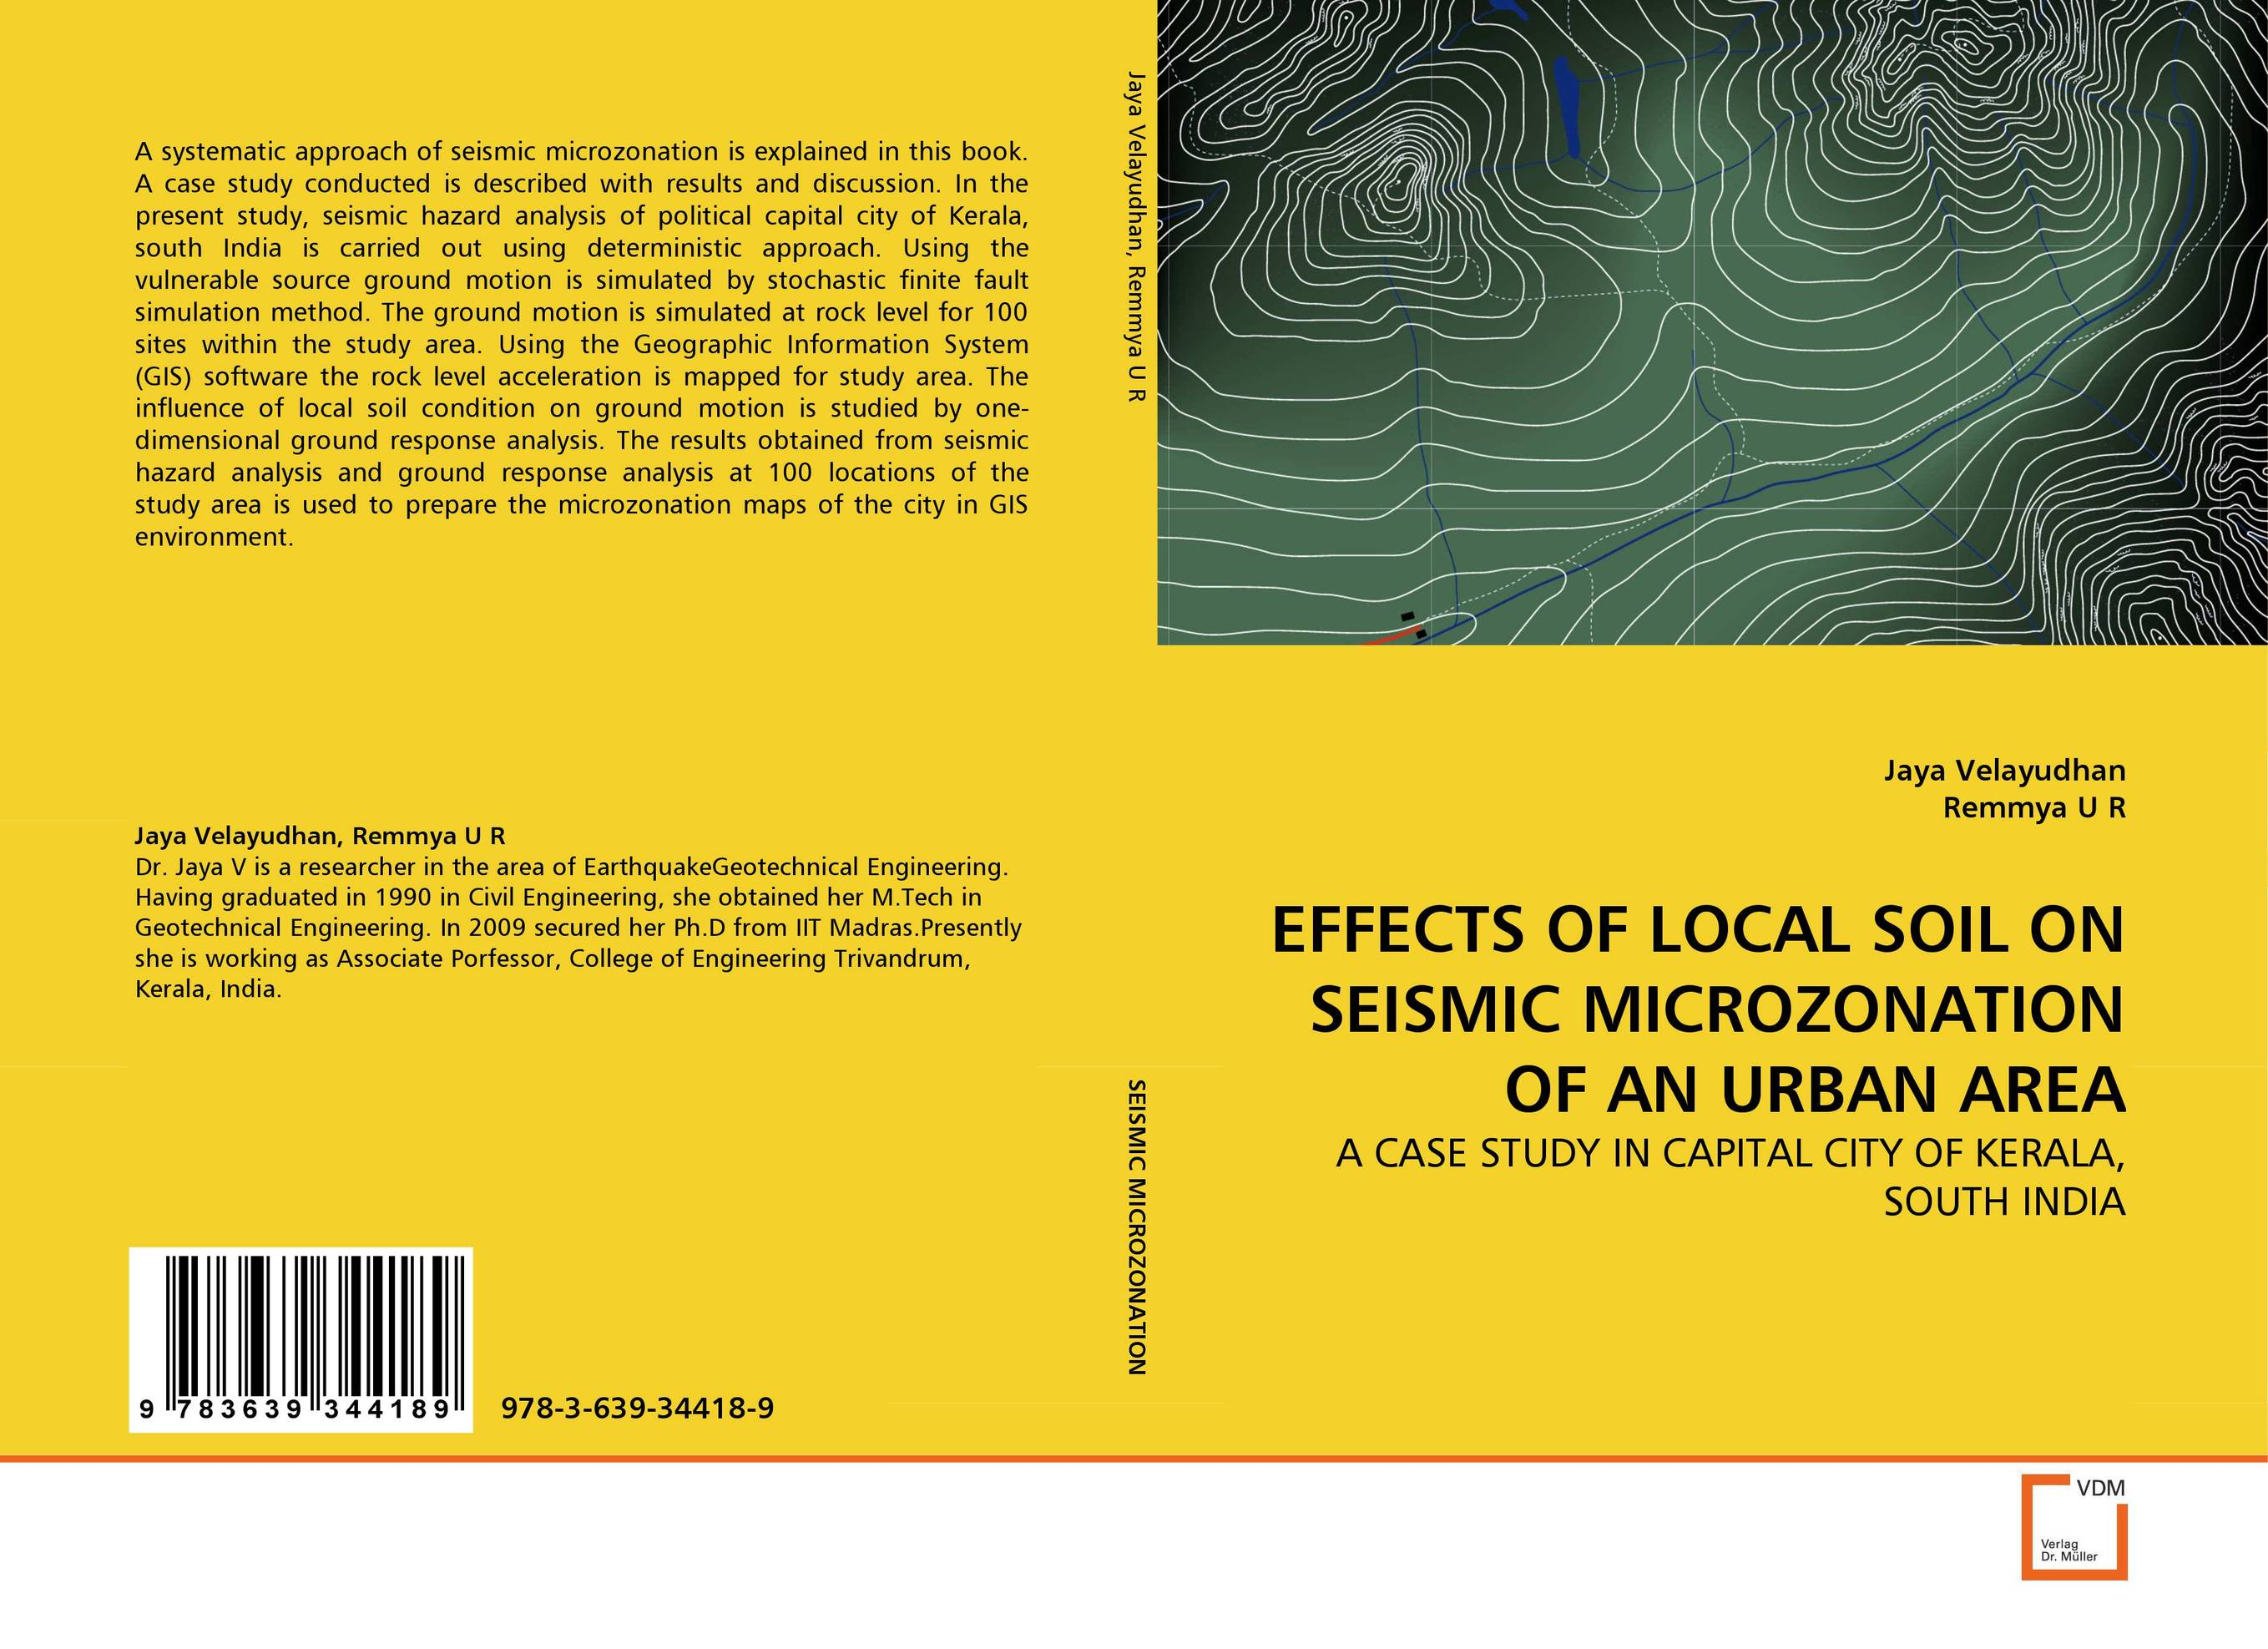 EFFECTS OF LOCAL SOIL ON SEISMIC MICROZONATION OF AN URBAN AREA a study of the religio political thought of abdurrahman wahid